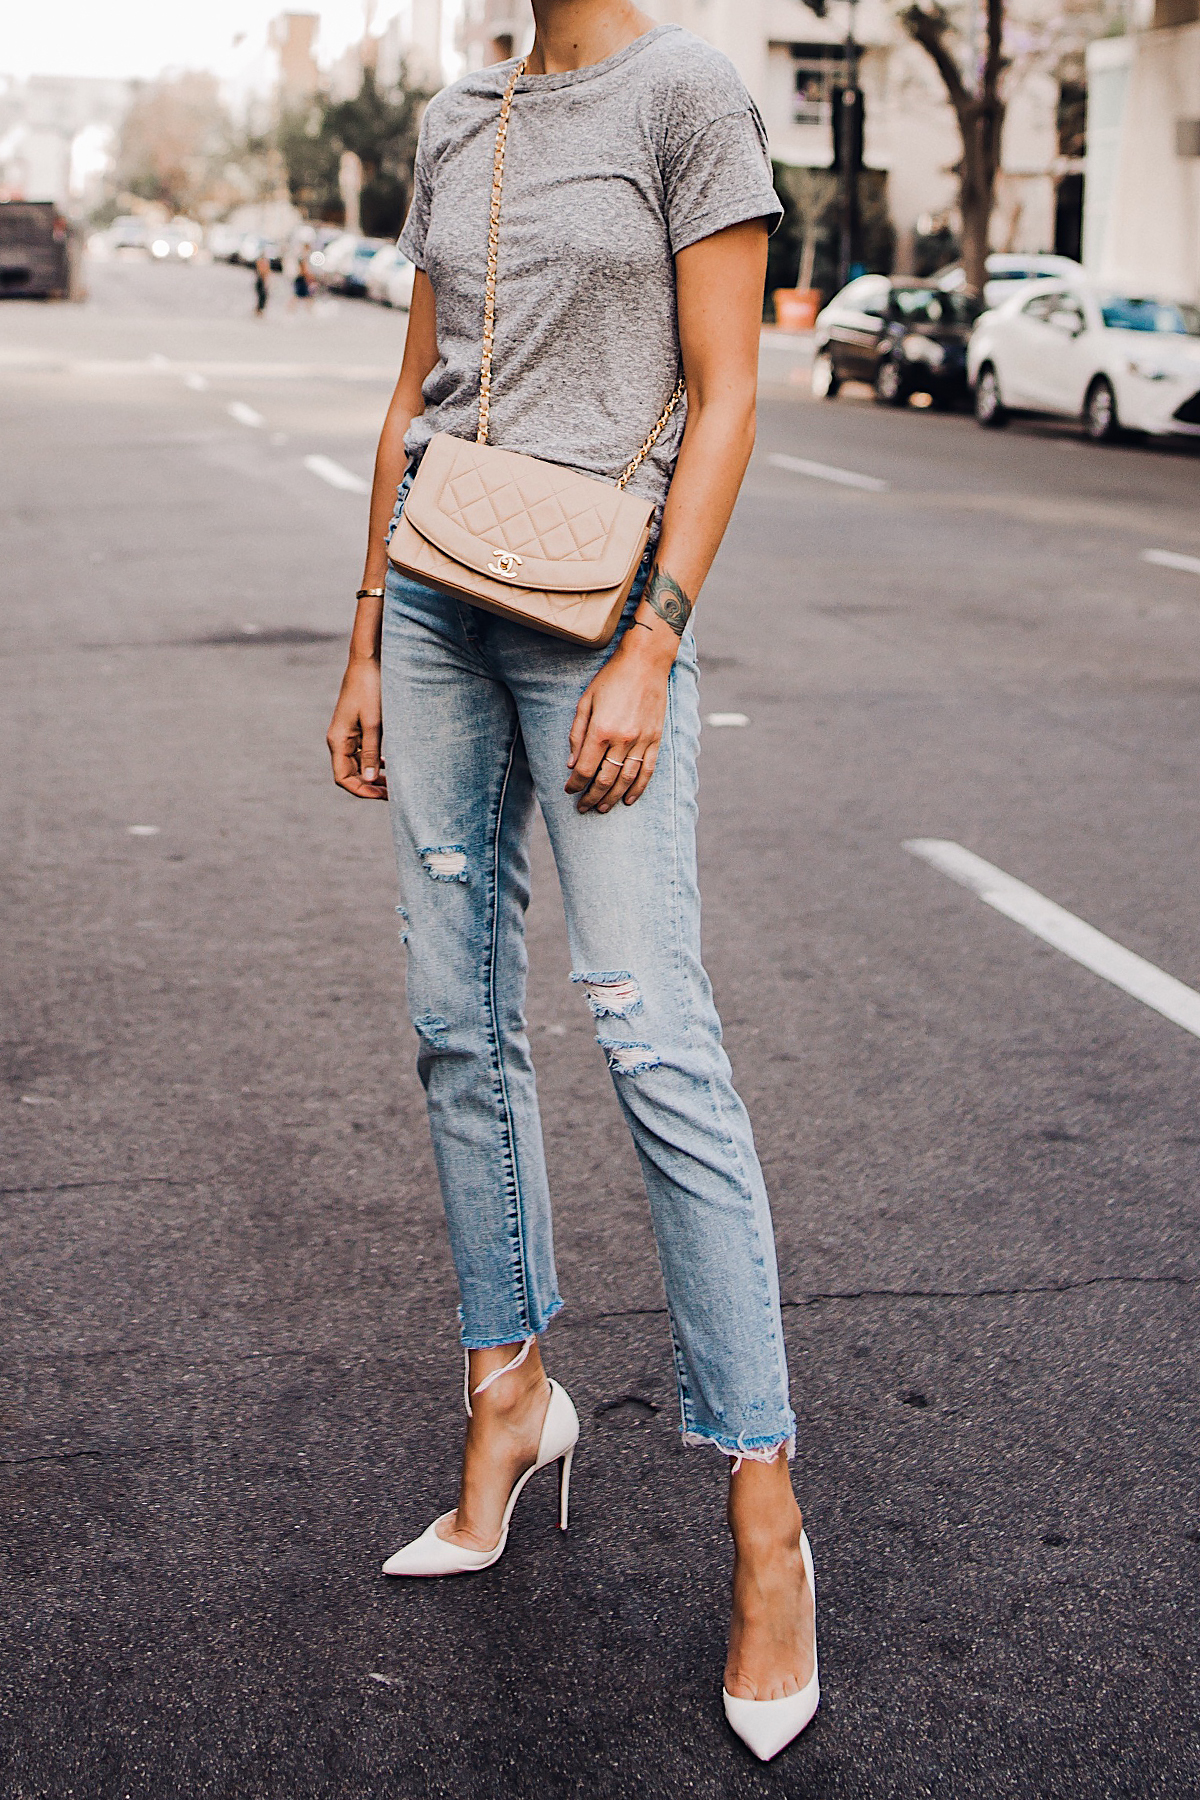 Woman Wearing Topshop Grey Tshirt Blanknyc Ripped Jeans Christian Louboutin White Pumps Chanel Quilted Tan Handbag Fashion Jackson San Diego Blogger Fashion Blogger Street Style